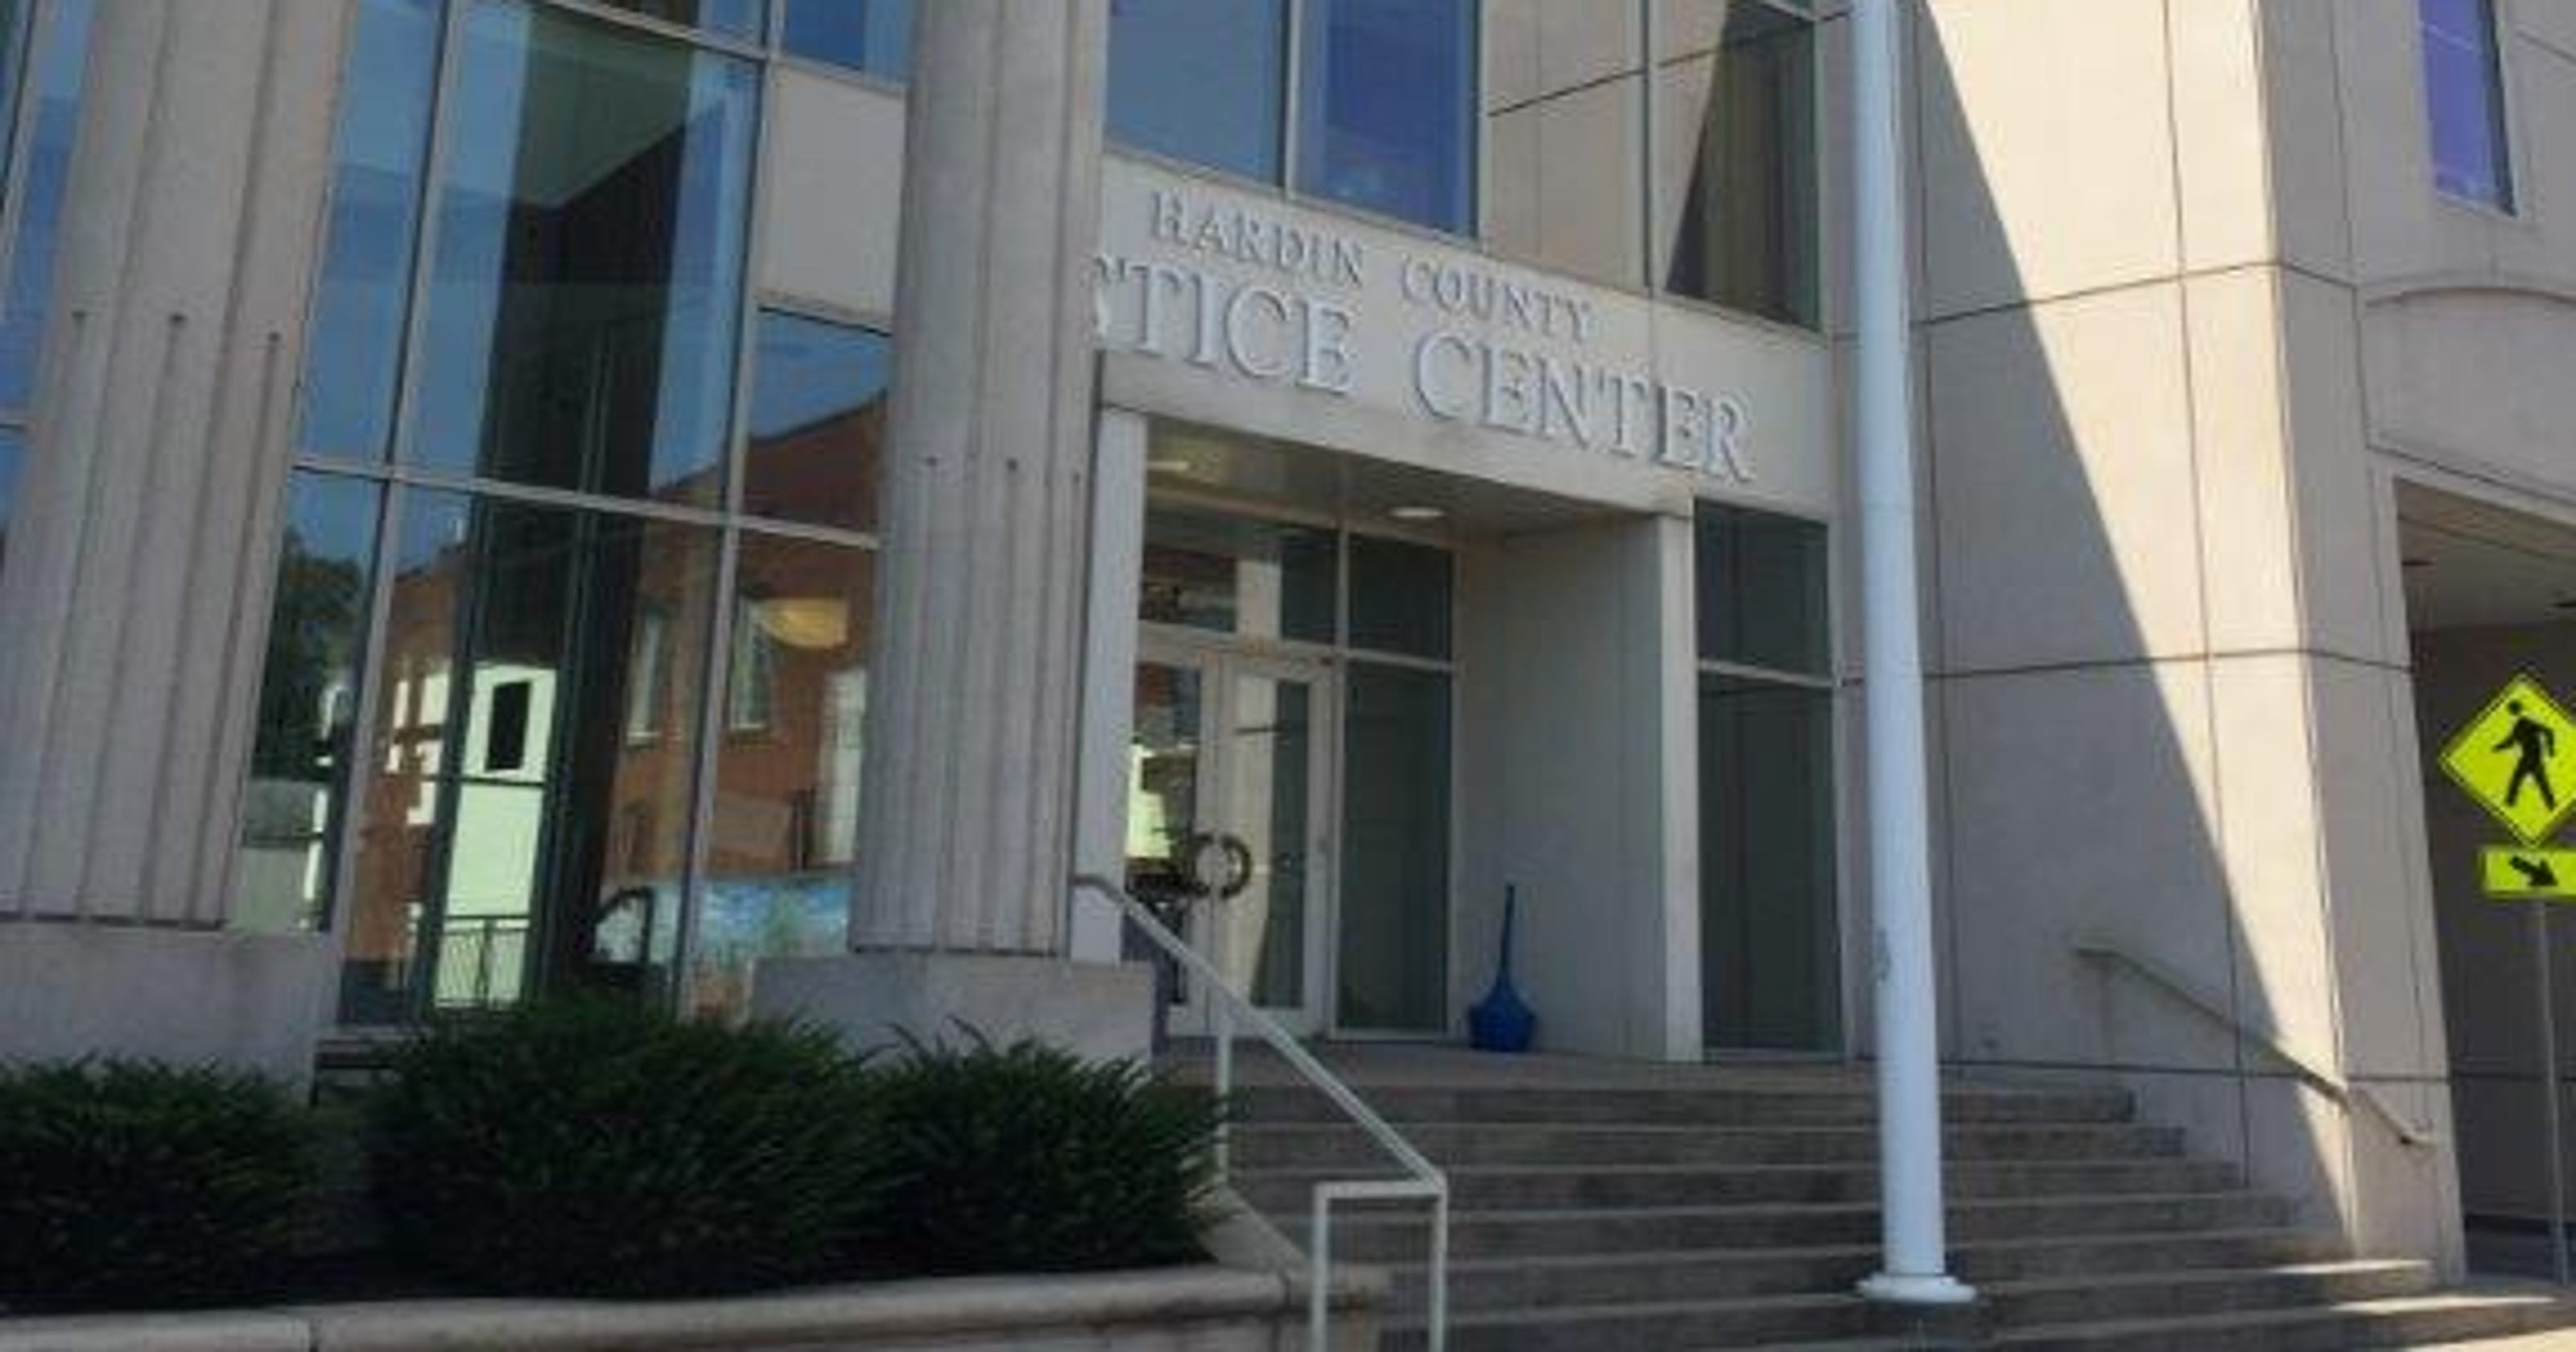 Social worker had troubled career before arrest